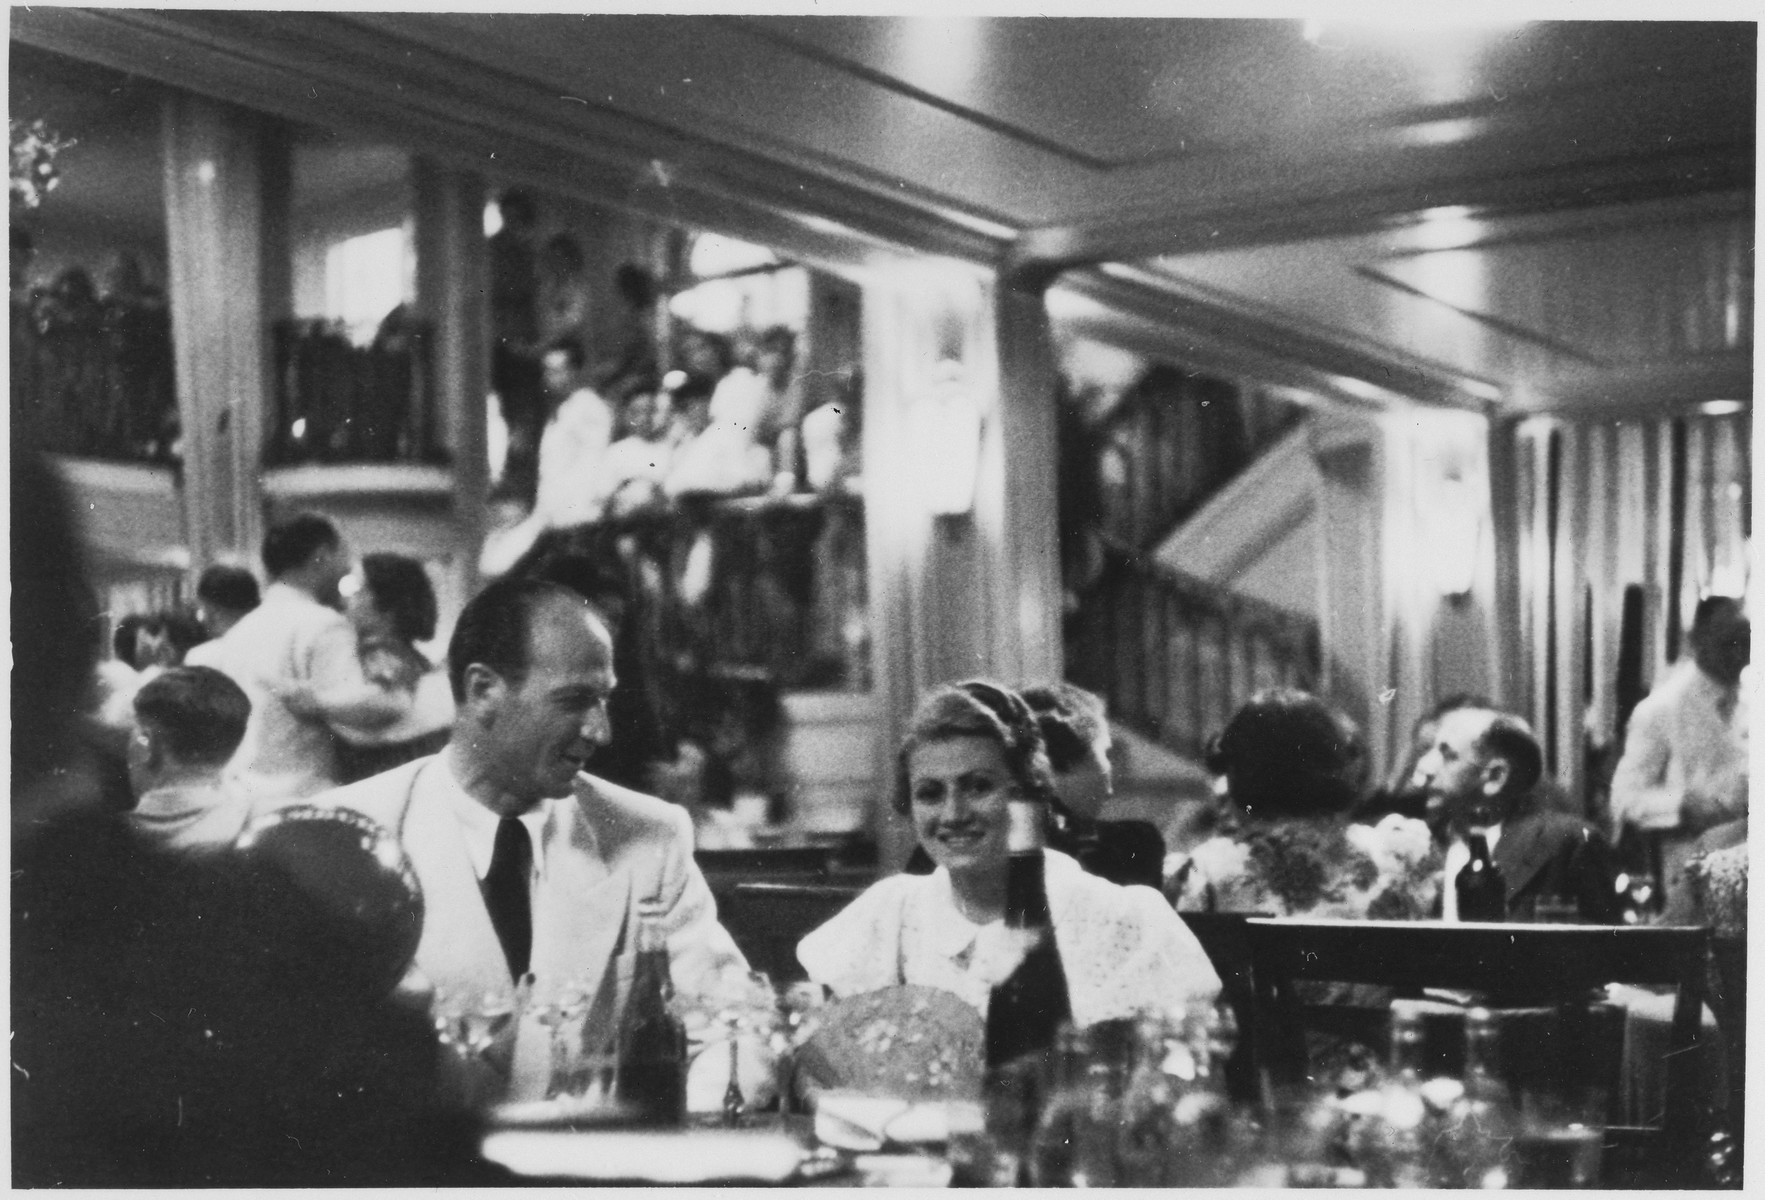 An unidentified couple enjoys a festive evening in the mirrored salon of the MS St. Louis.  Another couple dances in the background.